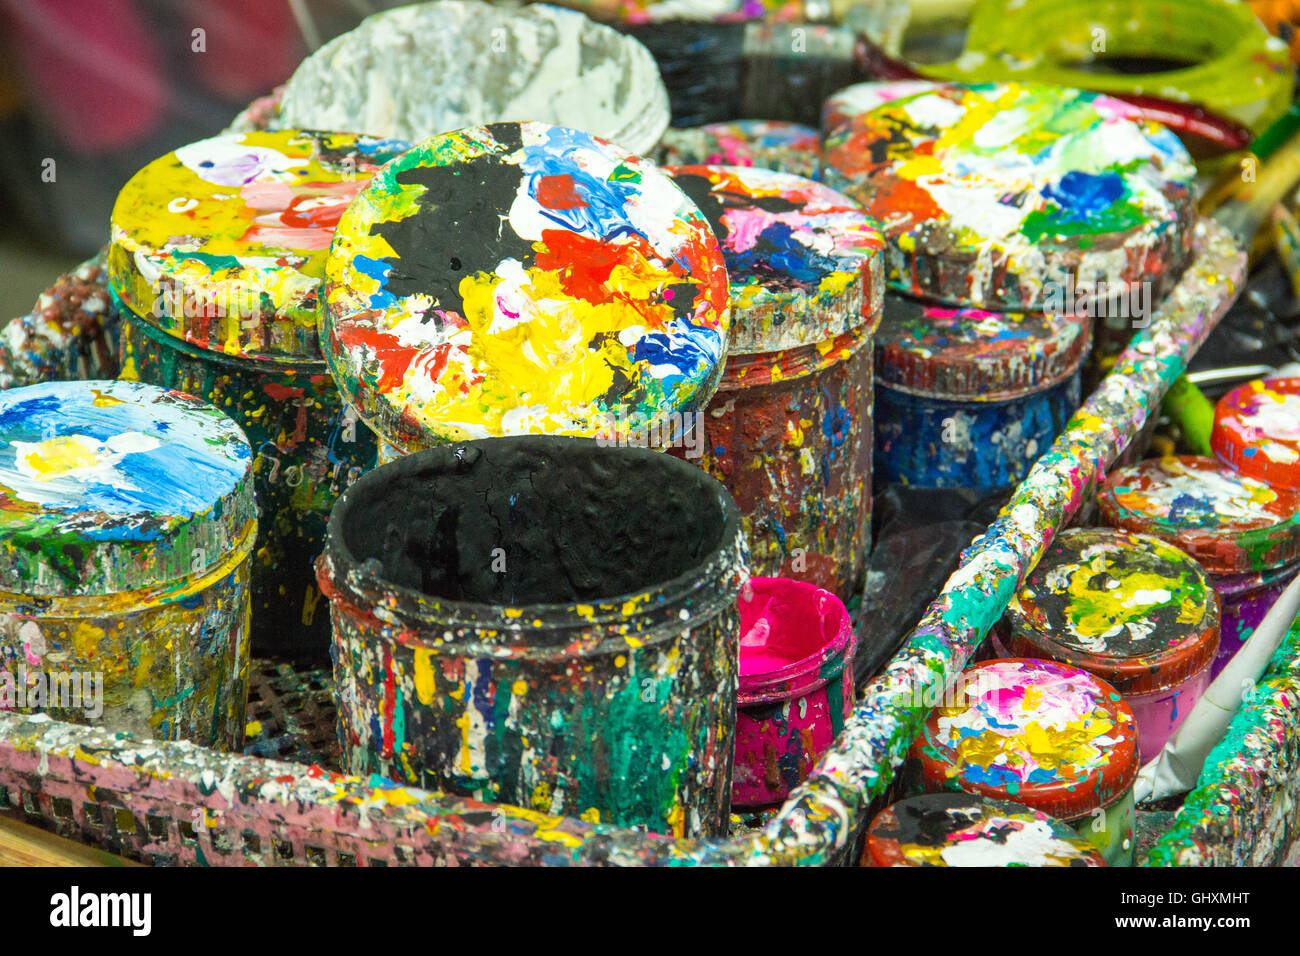 Paint-splattered tins of artist's paints and brushes, Stock Photo